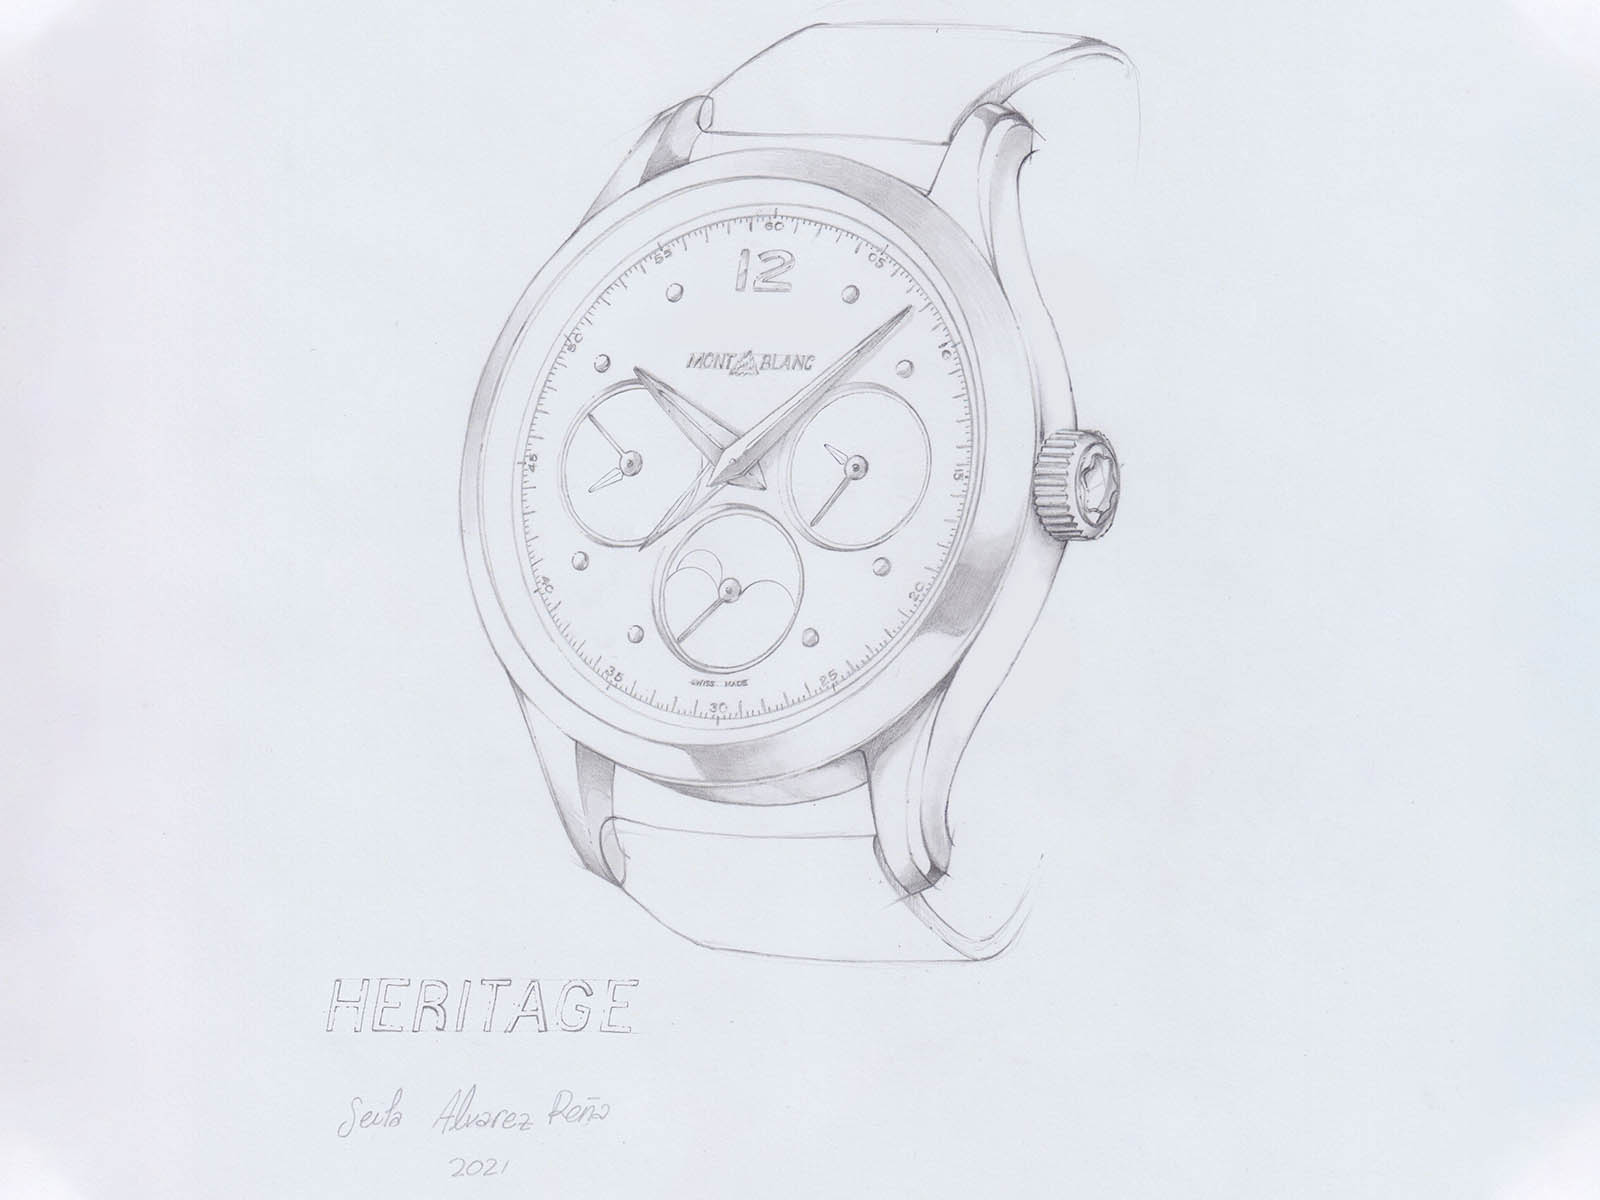 128669-montblanc-heritage-manufacture-perpetual-calendar-limited-edition-100-5.jpg